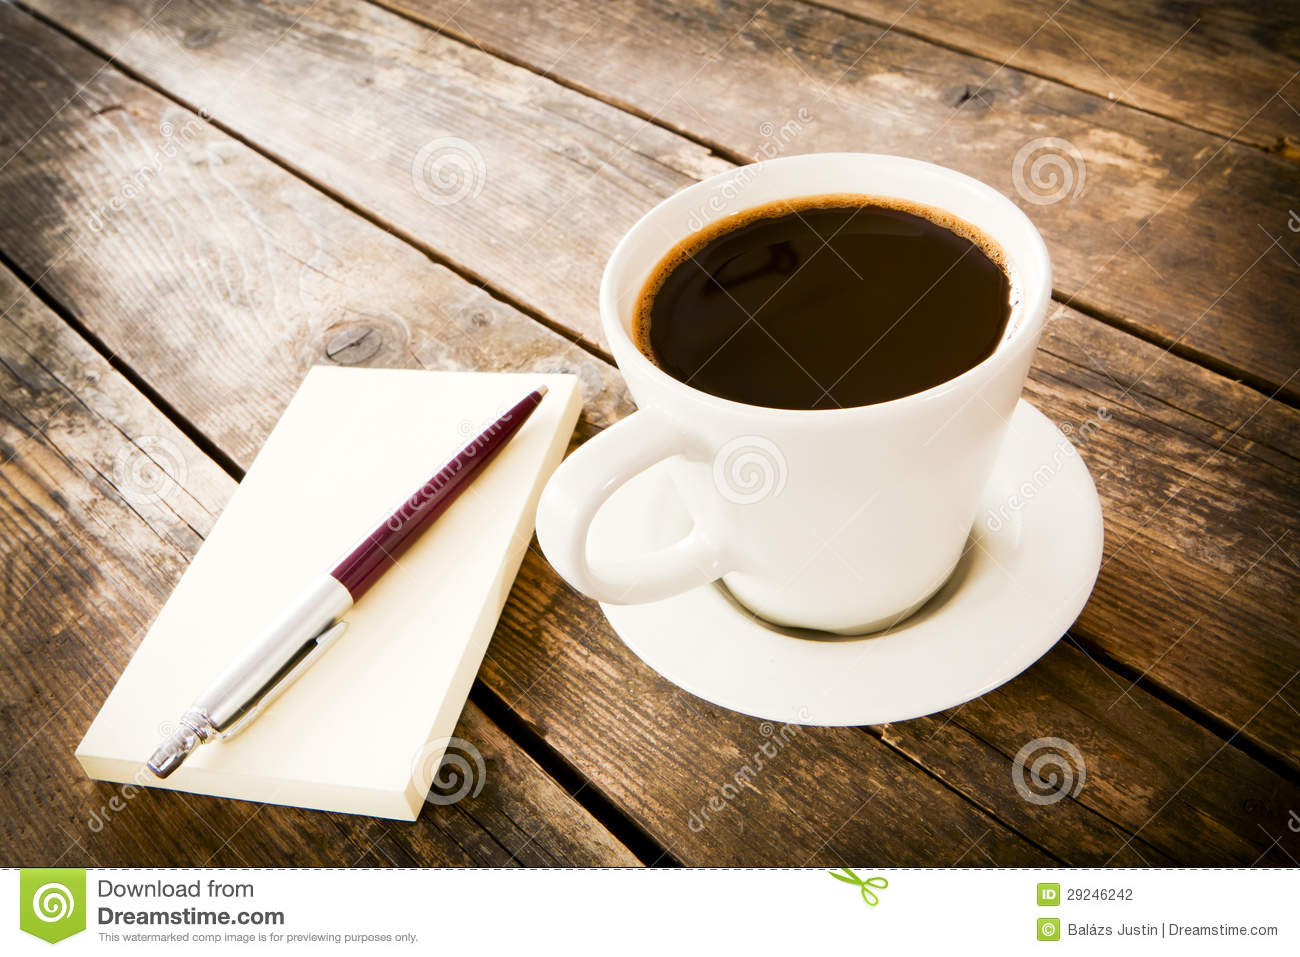 Cup Of Coffee And Notebook Next To It. Stock Photography - Image ...